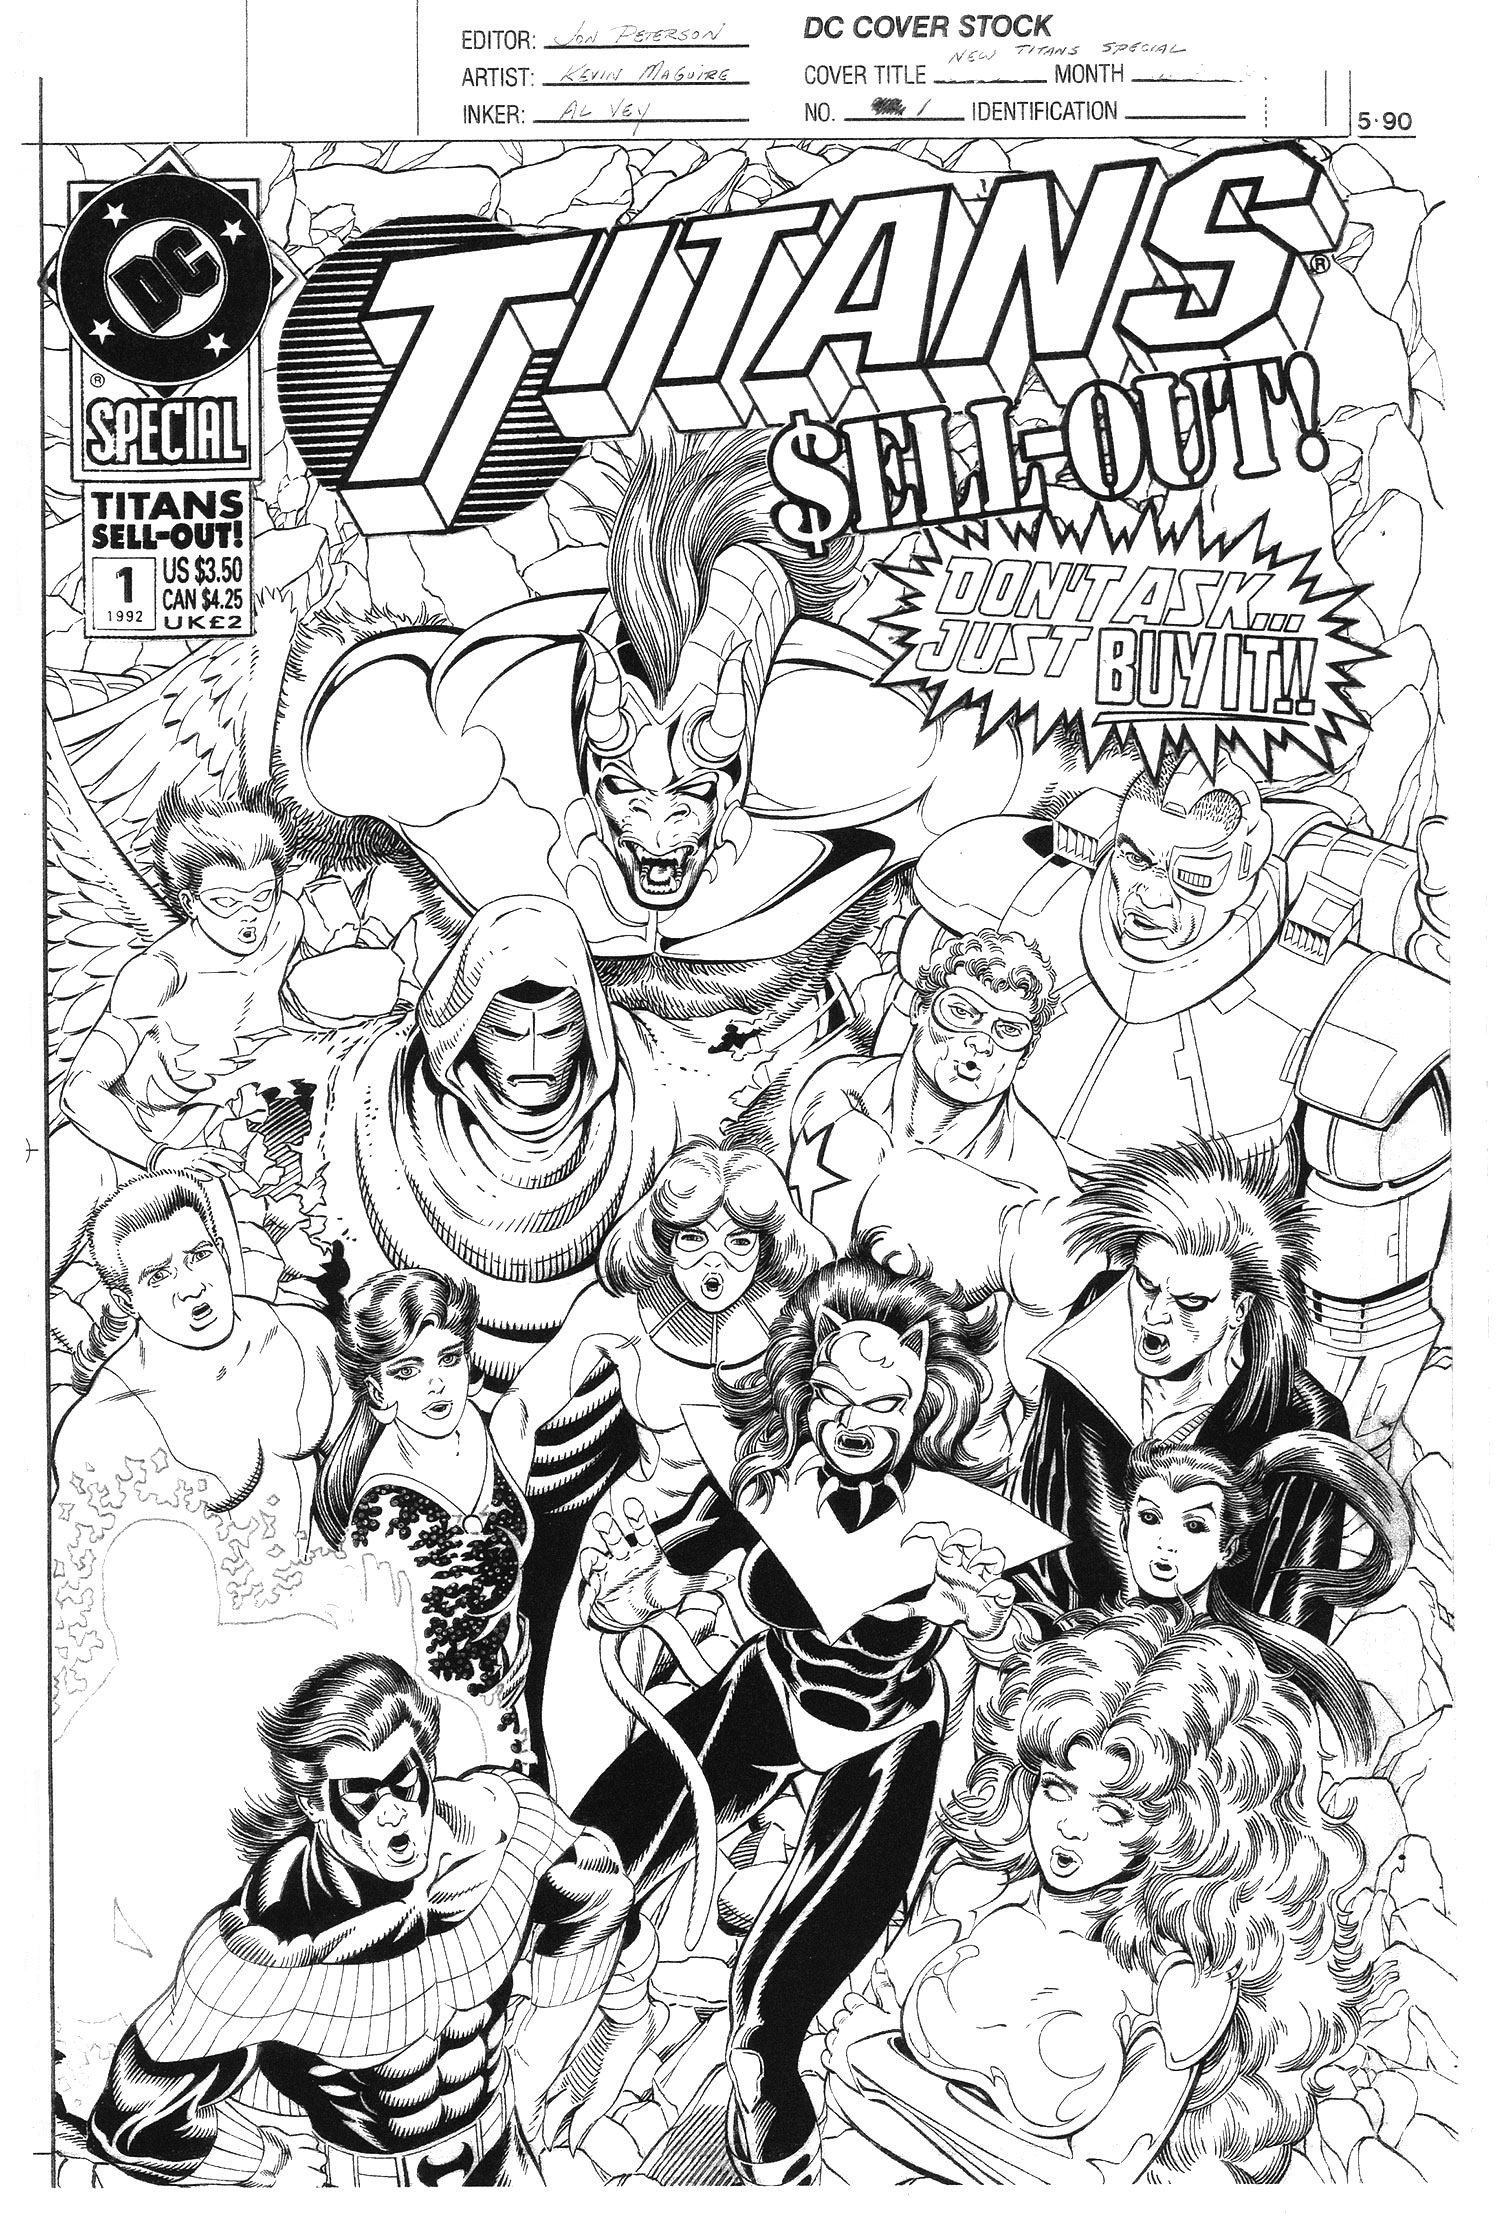 Kevin Maguire Titans Sell Out 1 Cover Dc Comic Art For